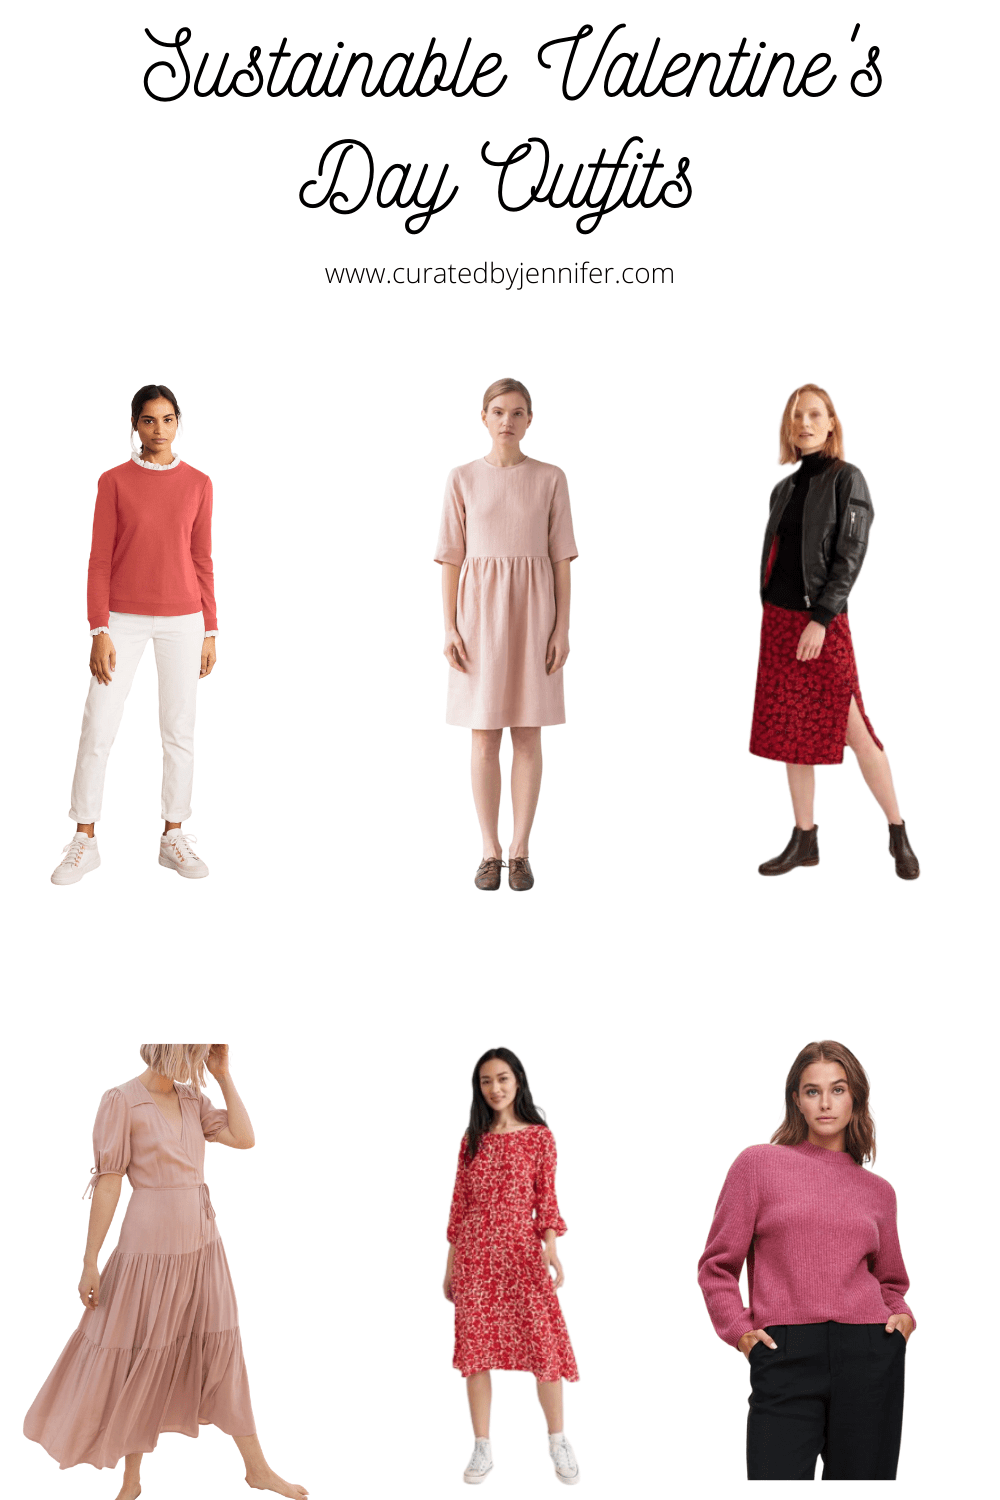 Sustainable Valentine's Day Outfits